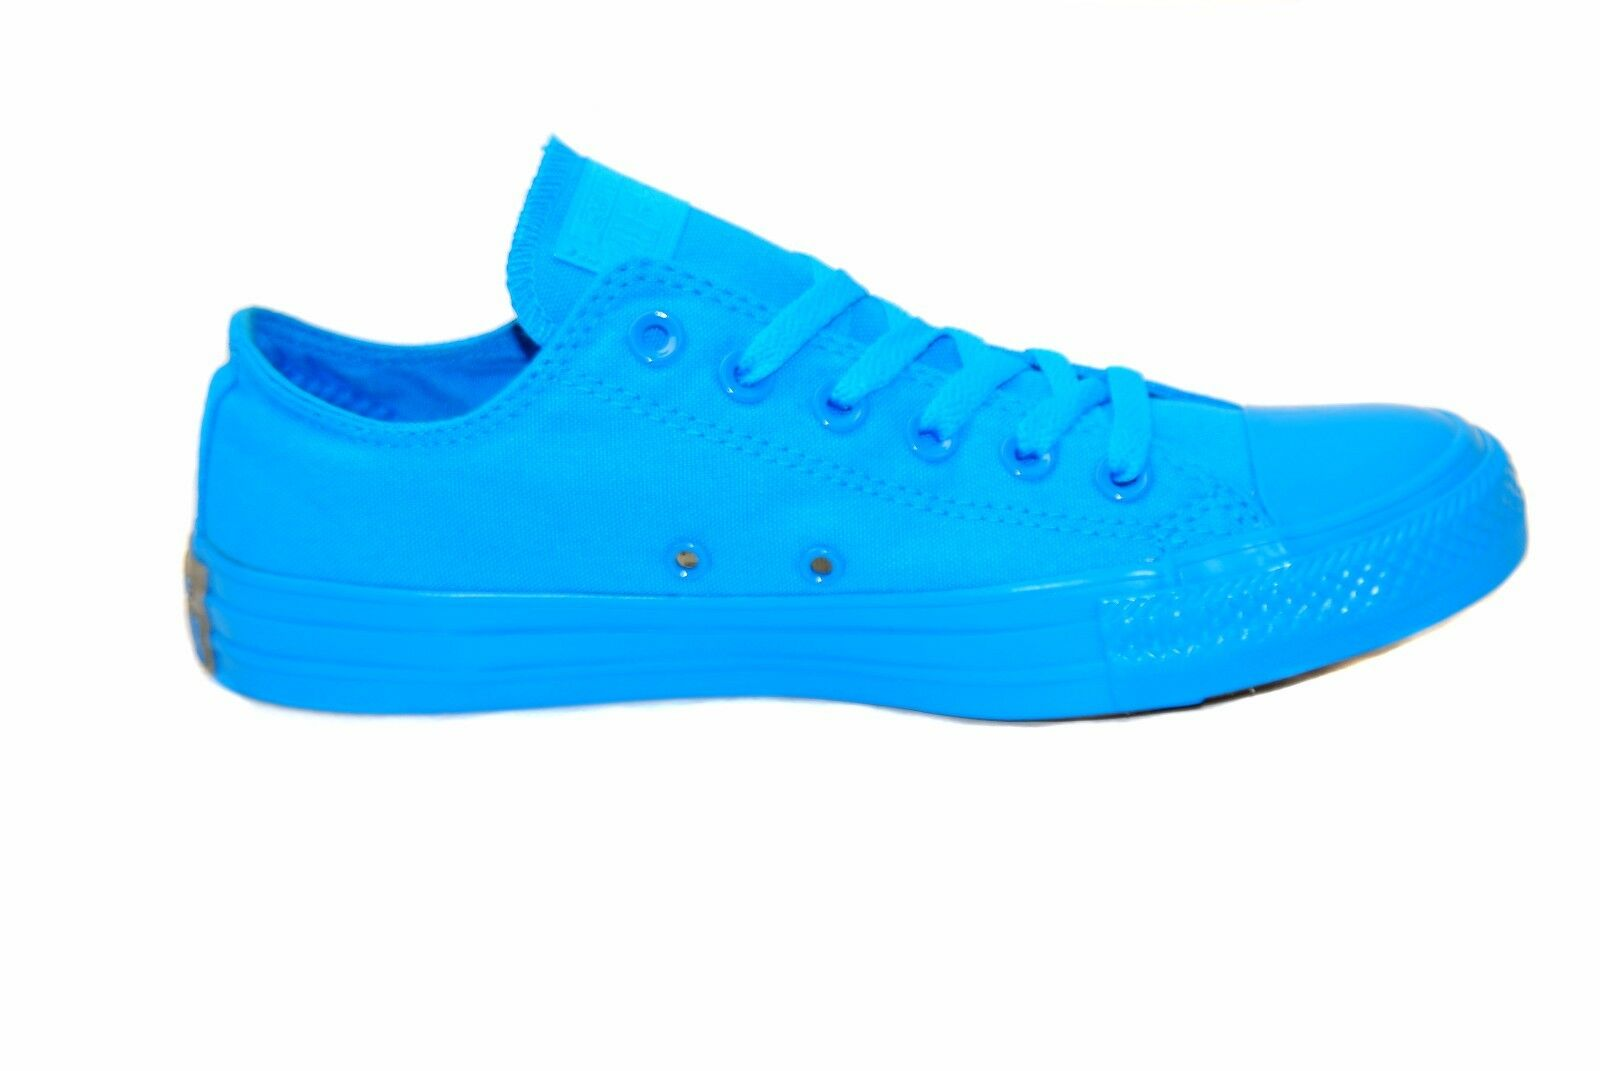 Converse Unisex CTAS OX RRP 152783C Sneakers Blue/Thunder Size RRP OX  BCF84 2fefc1